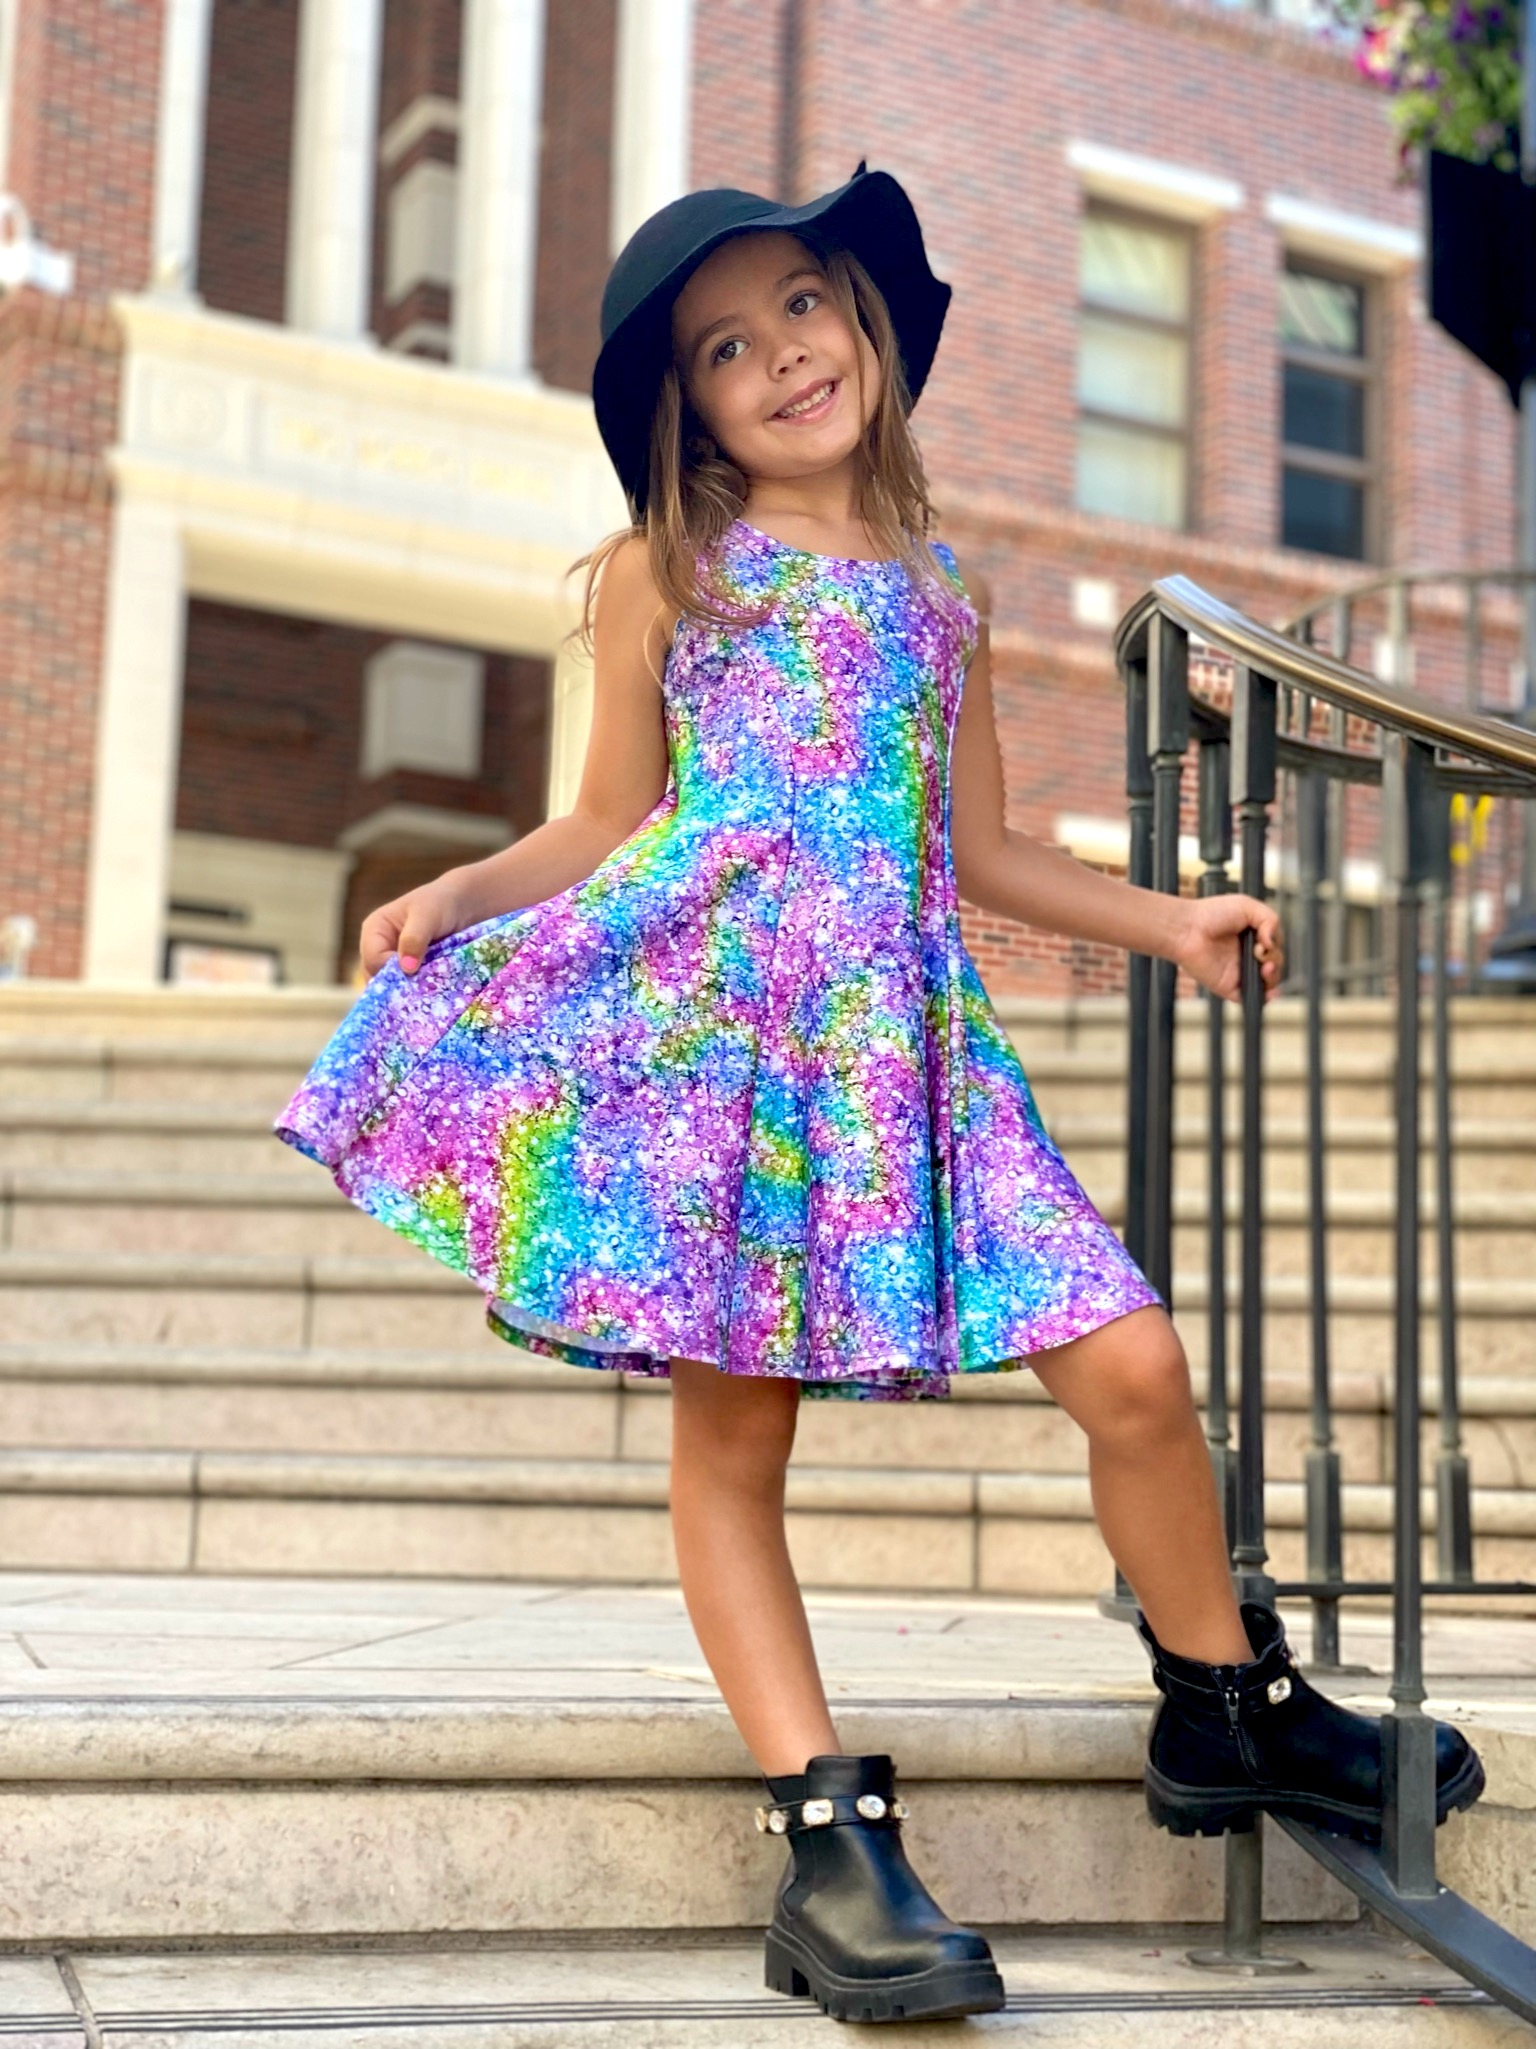 Young woman wearing a bright multicolored dress and standing on a flight of outdoor stairs.